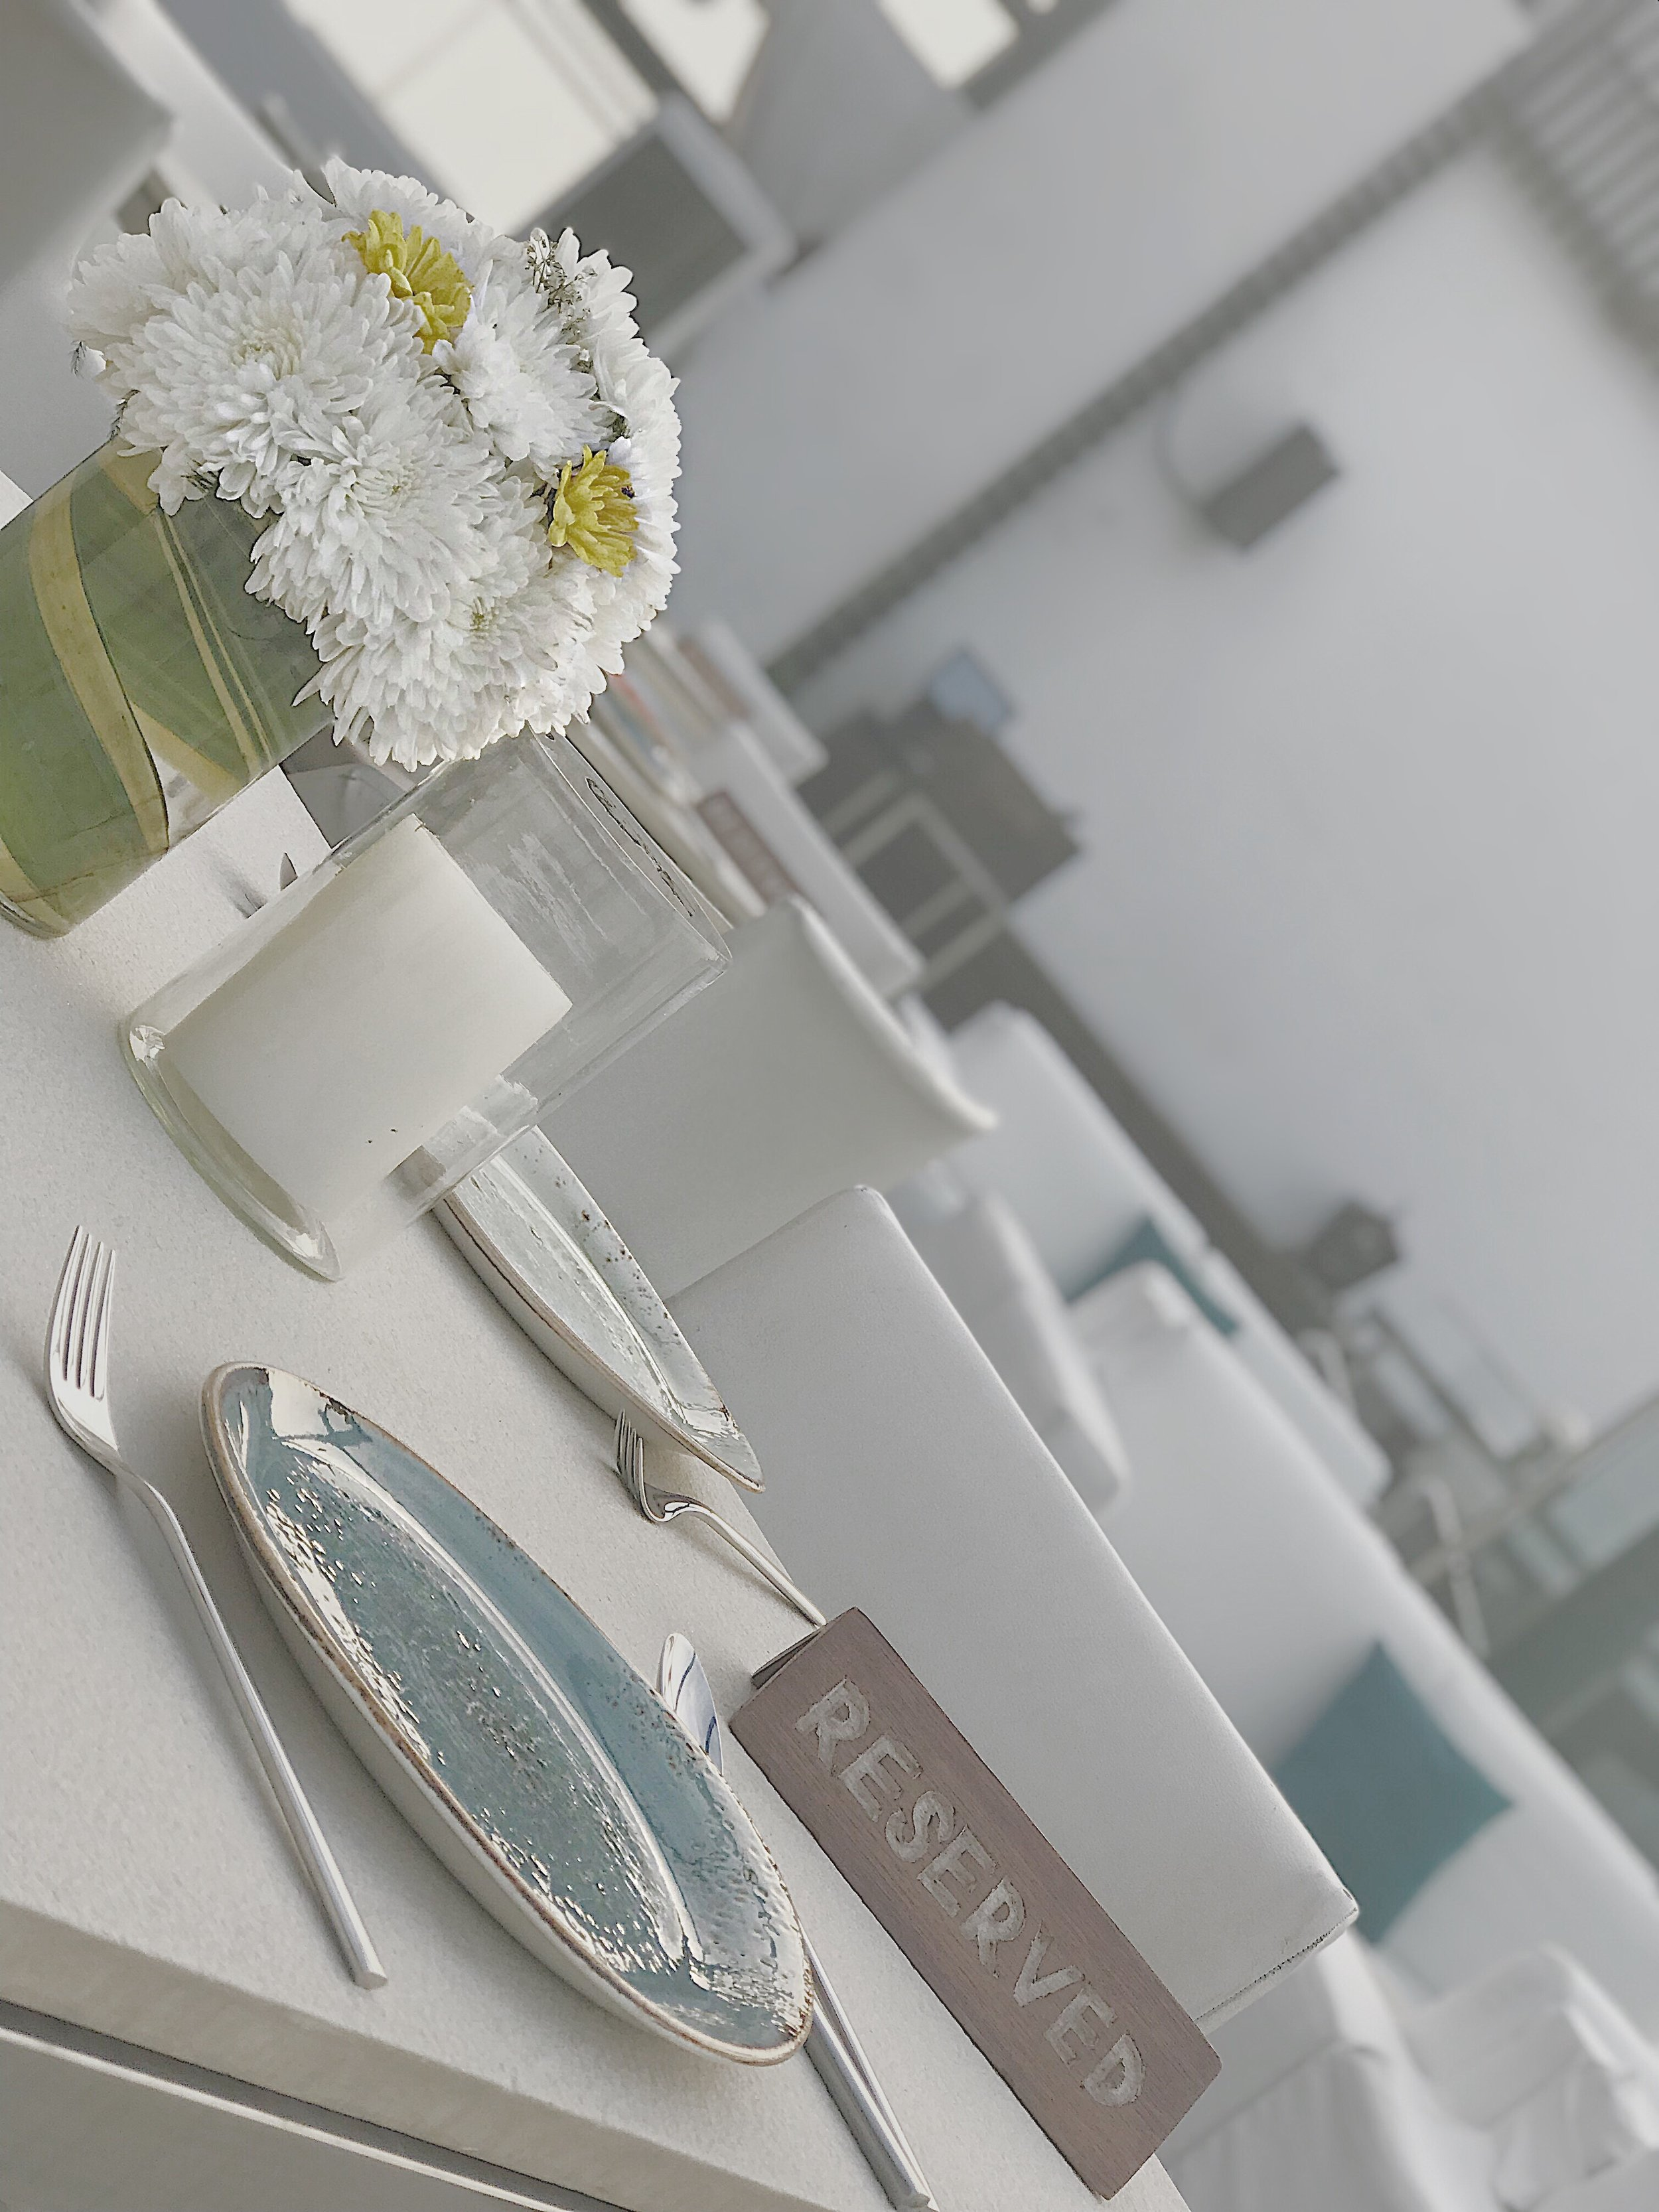 Pretty setting with flowers, candles and white interior at the Asilo roof top